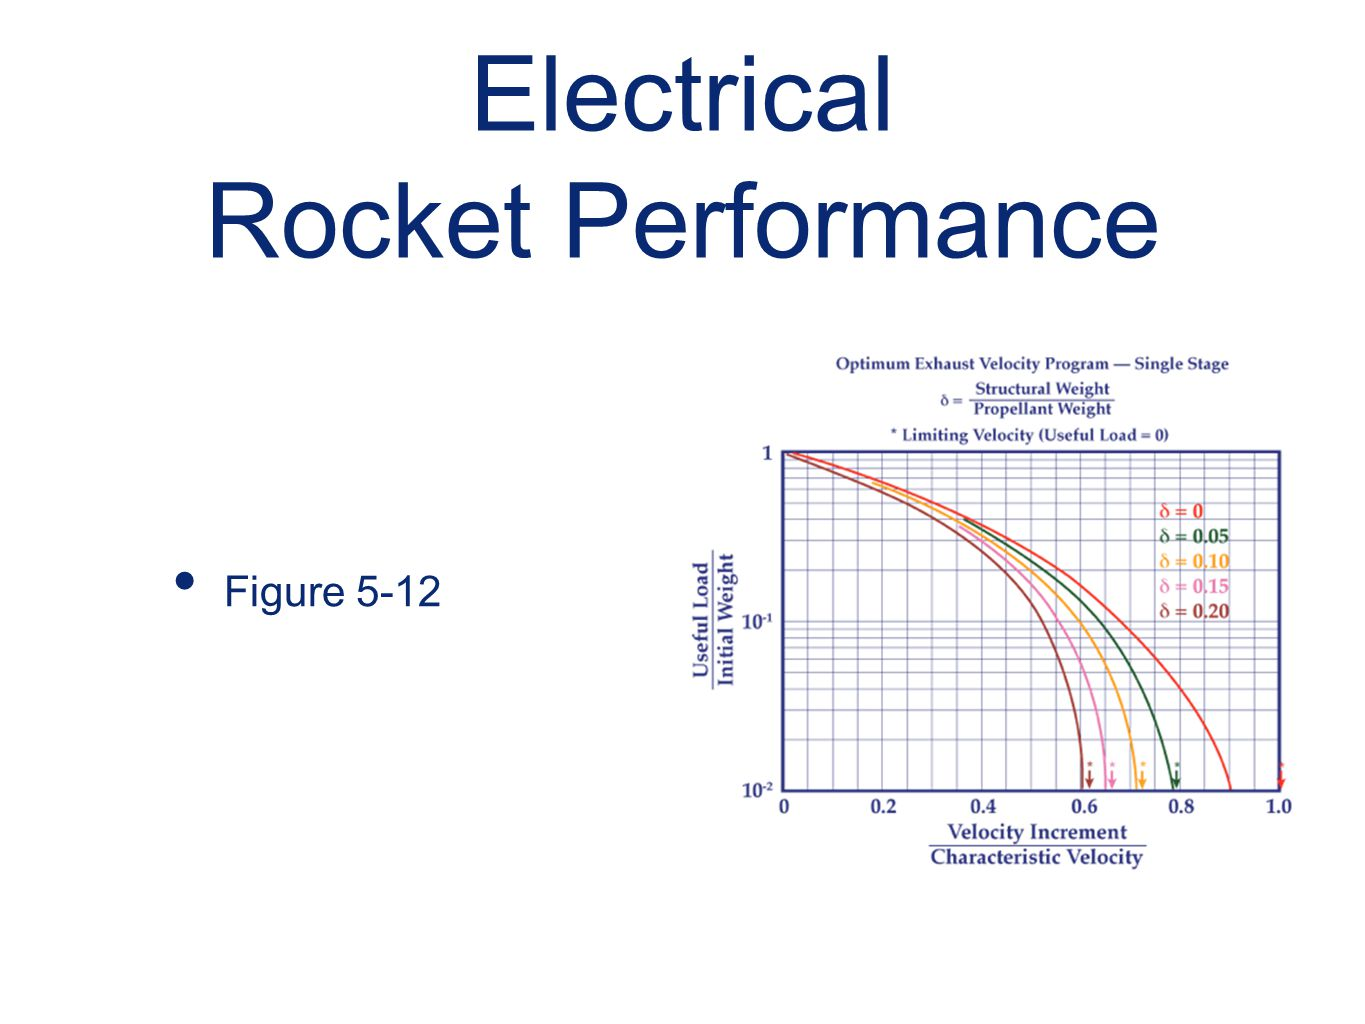 Electrical Rocket Performance Figure 5-12